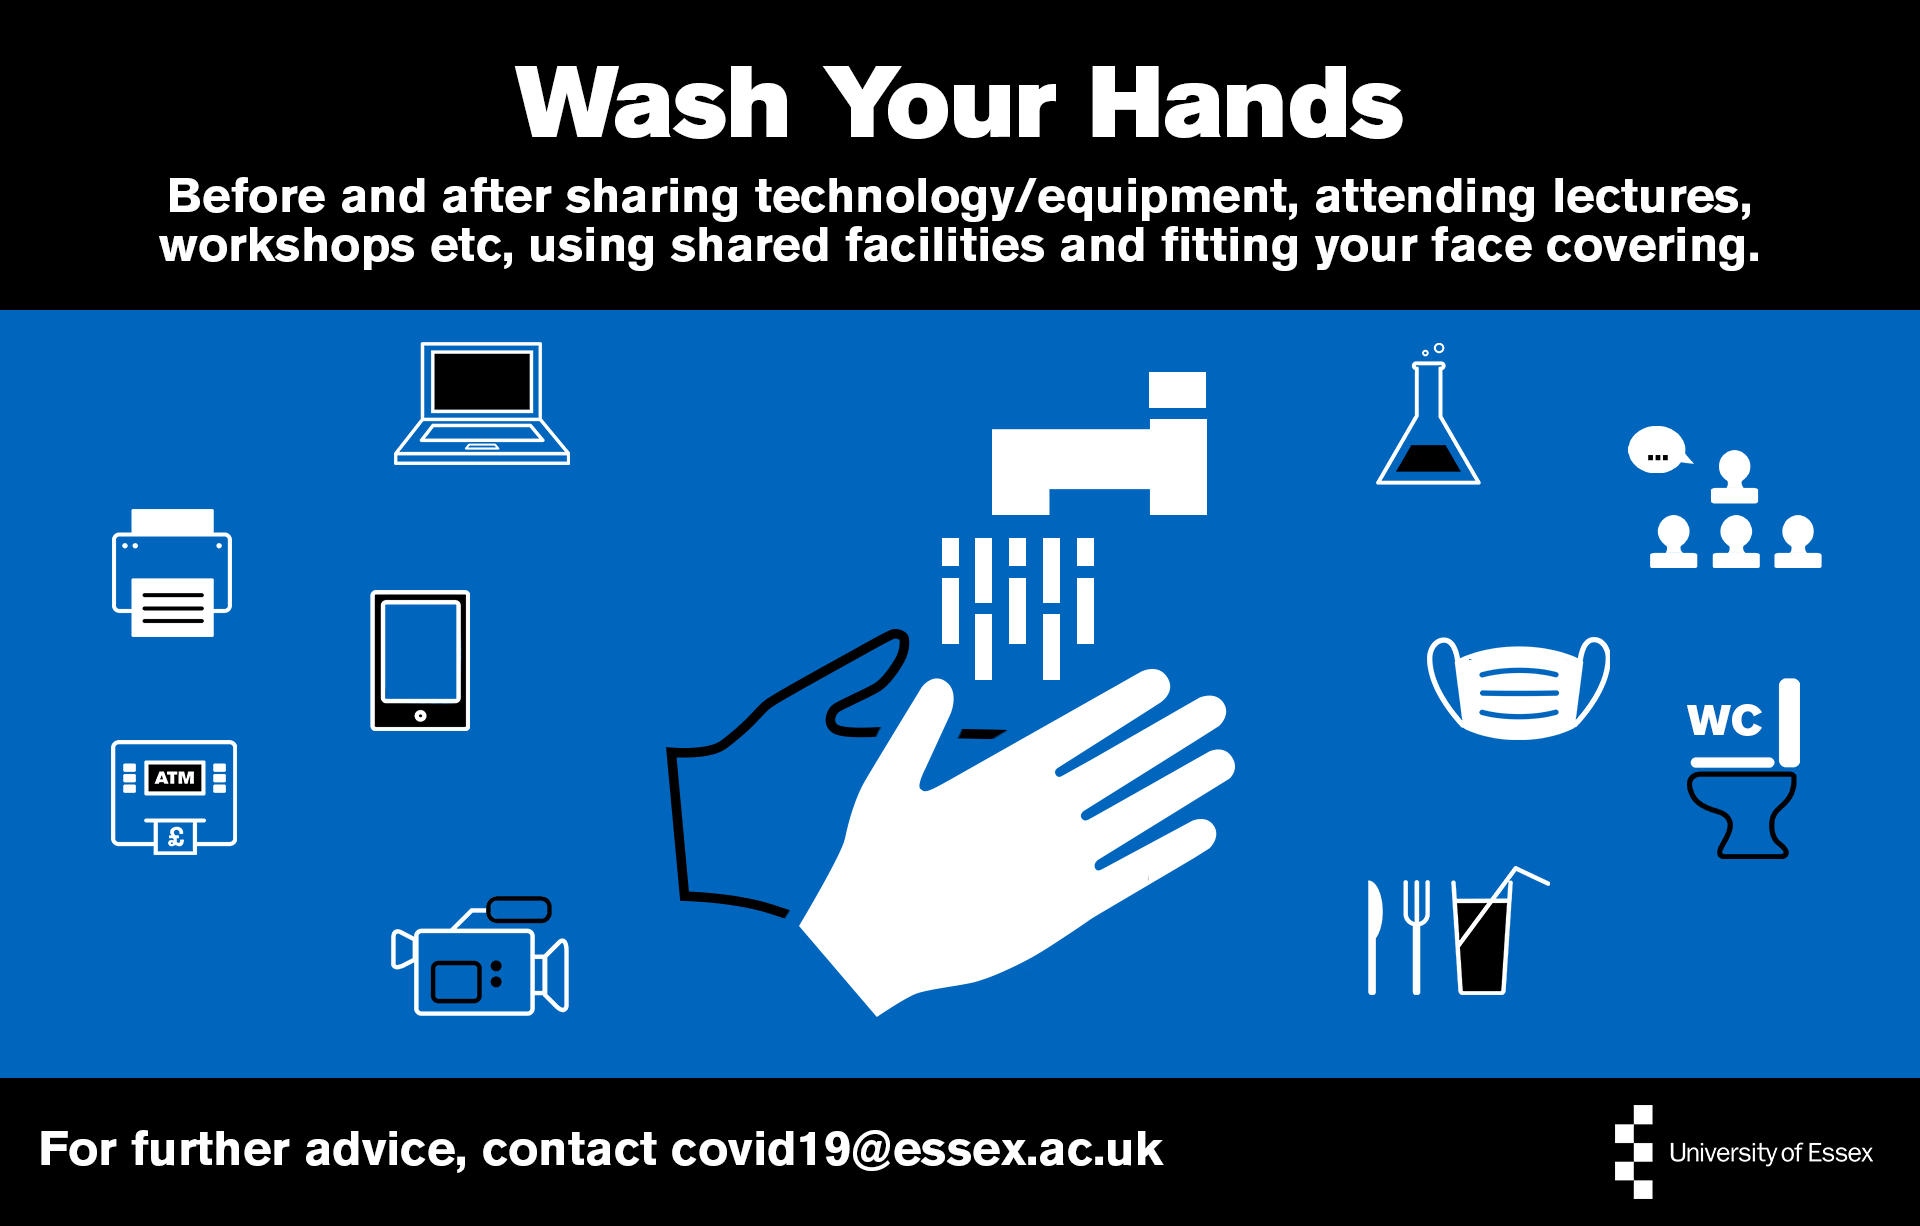 Wash your hands infographic